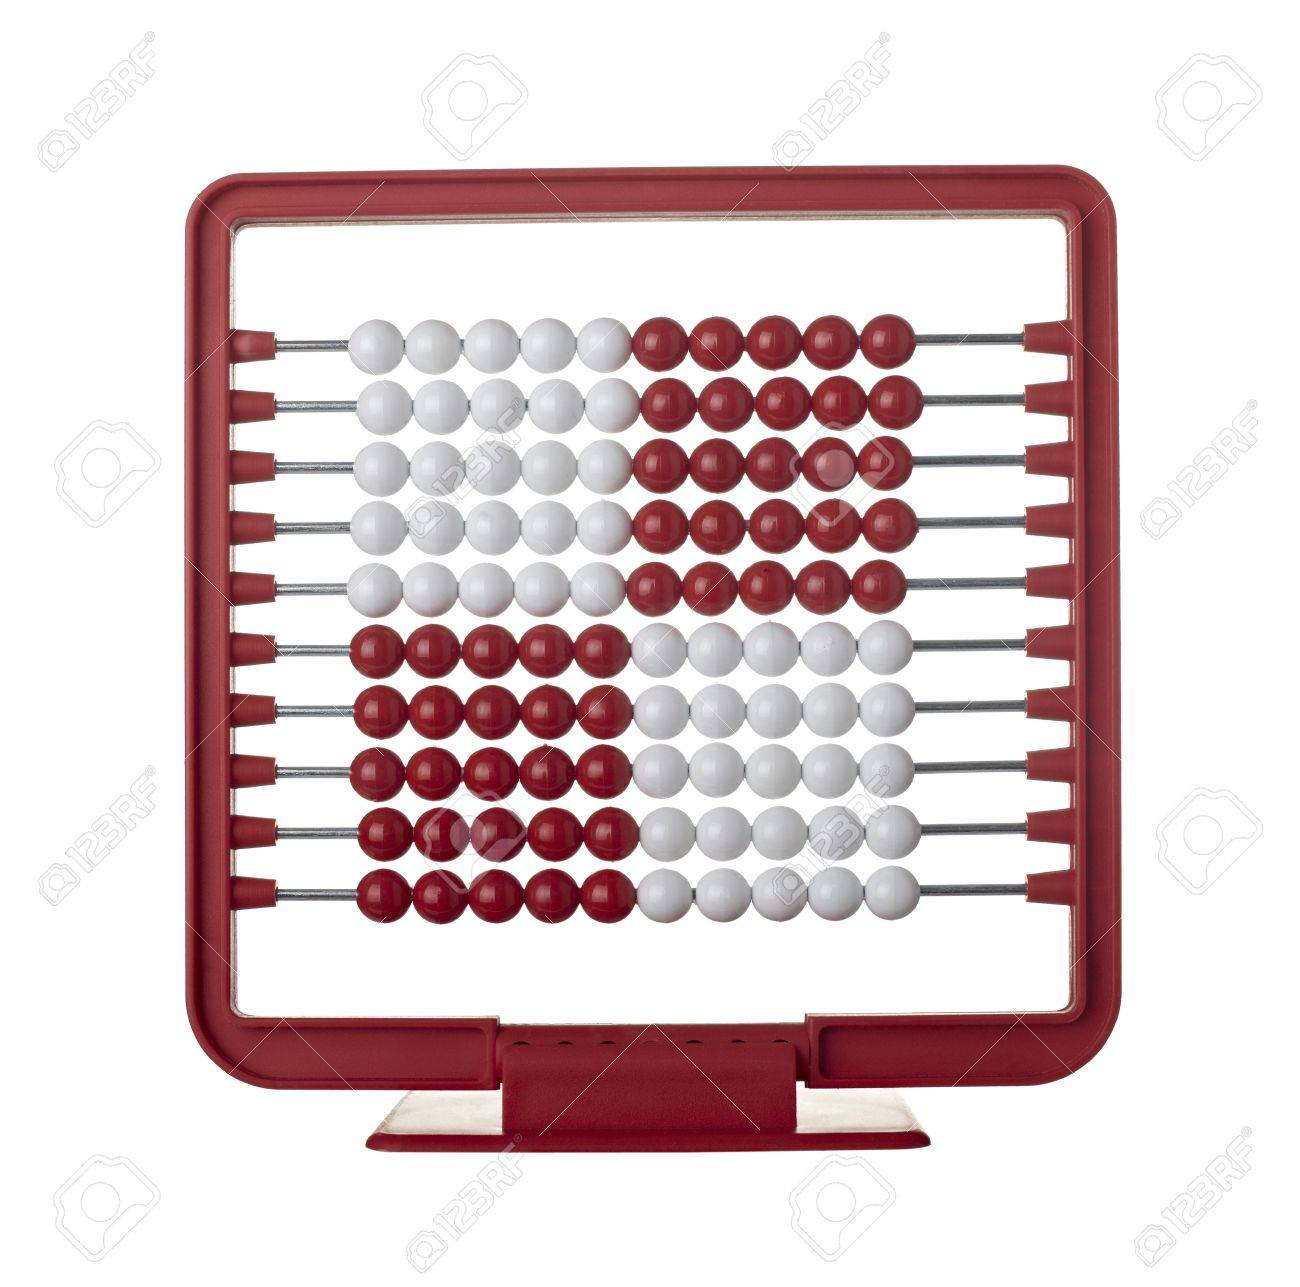 close up of an abacus on white background Stock Photo - 7513261